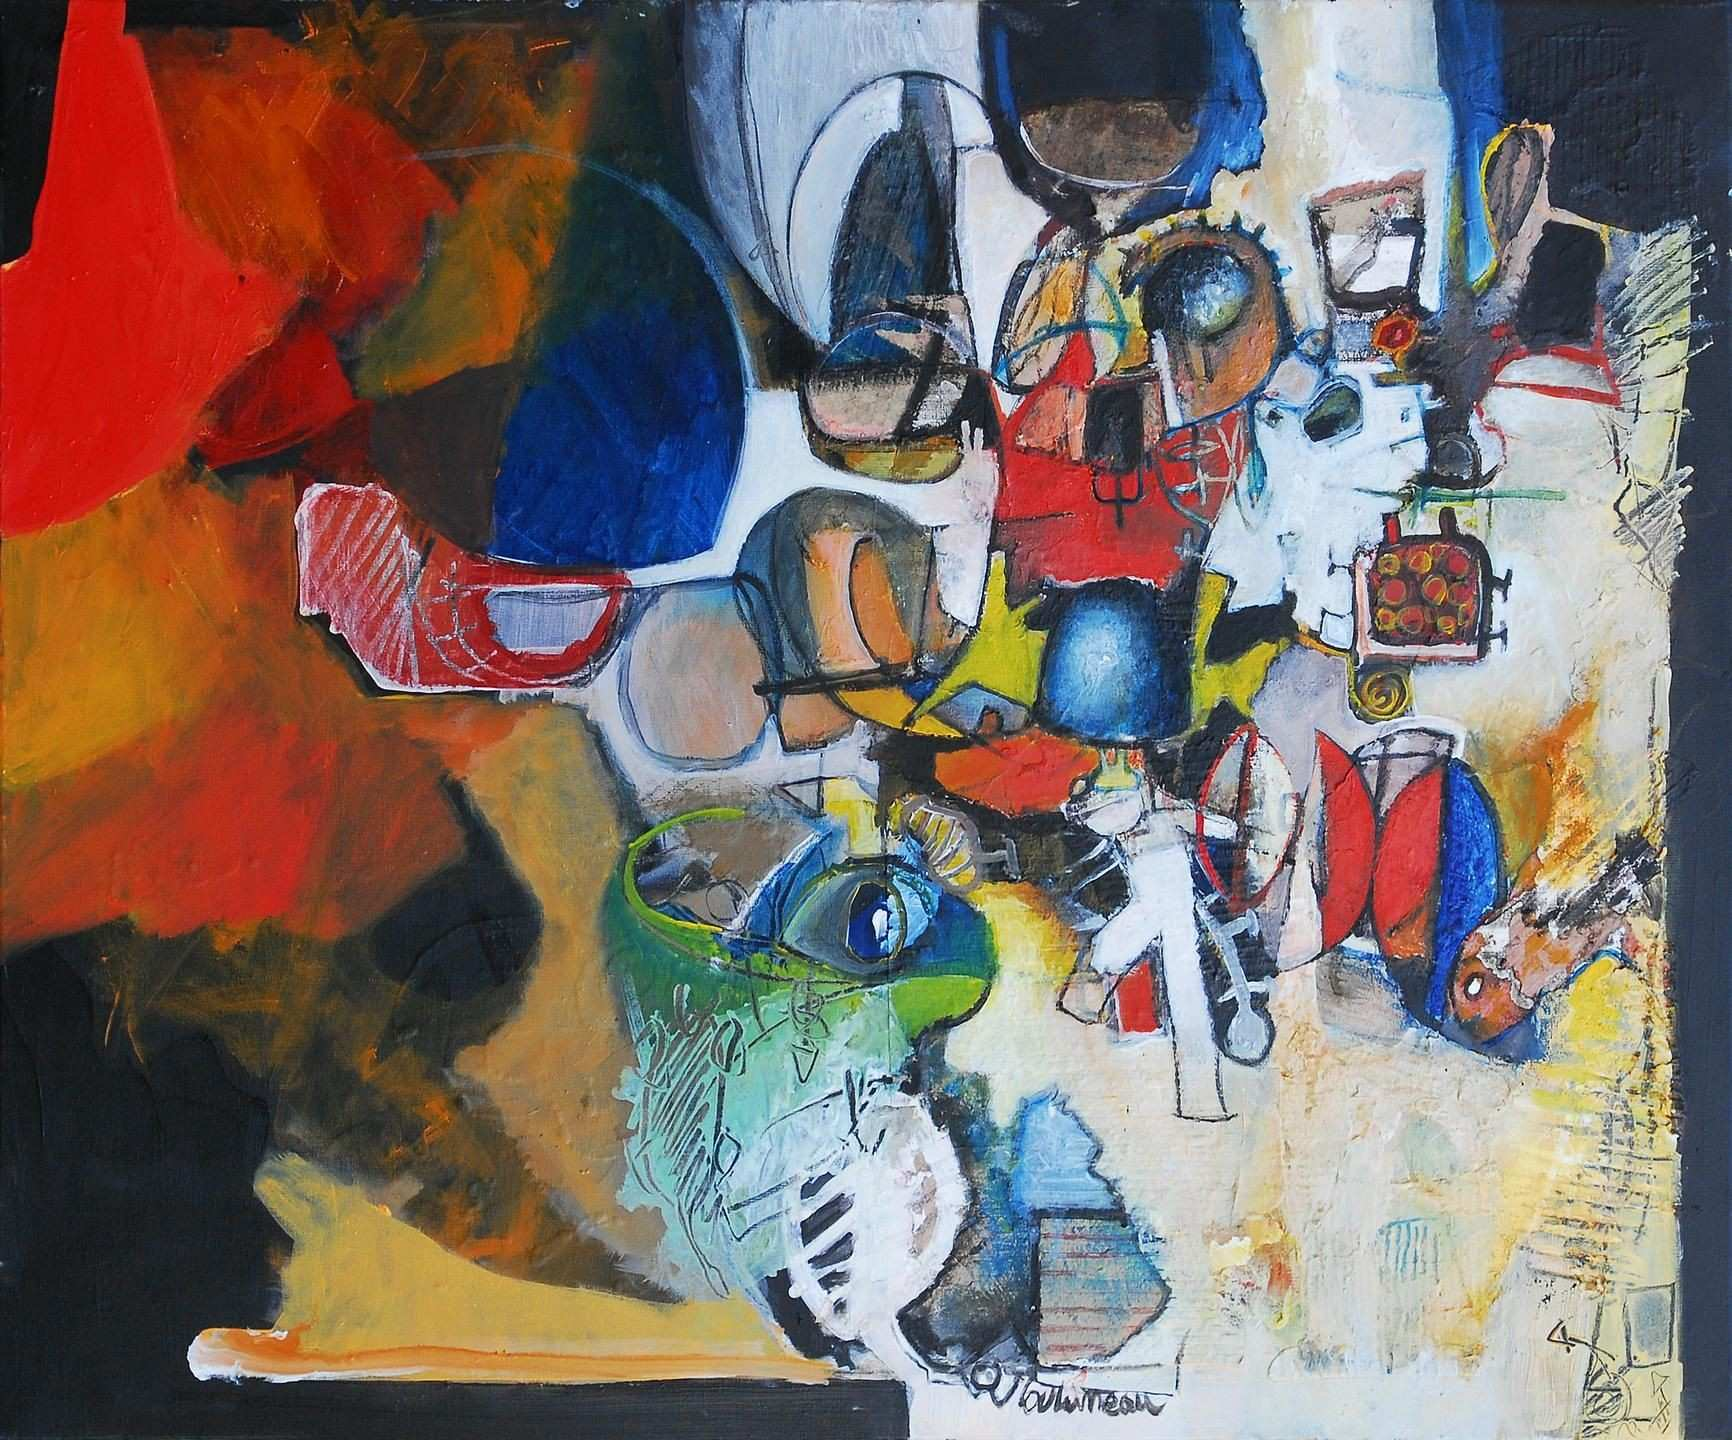 Pennsylvania contemporary painter creating vibrant living works of